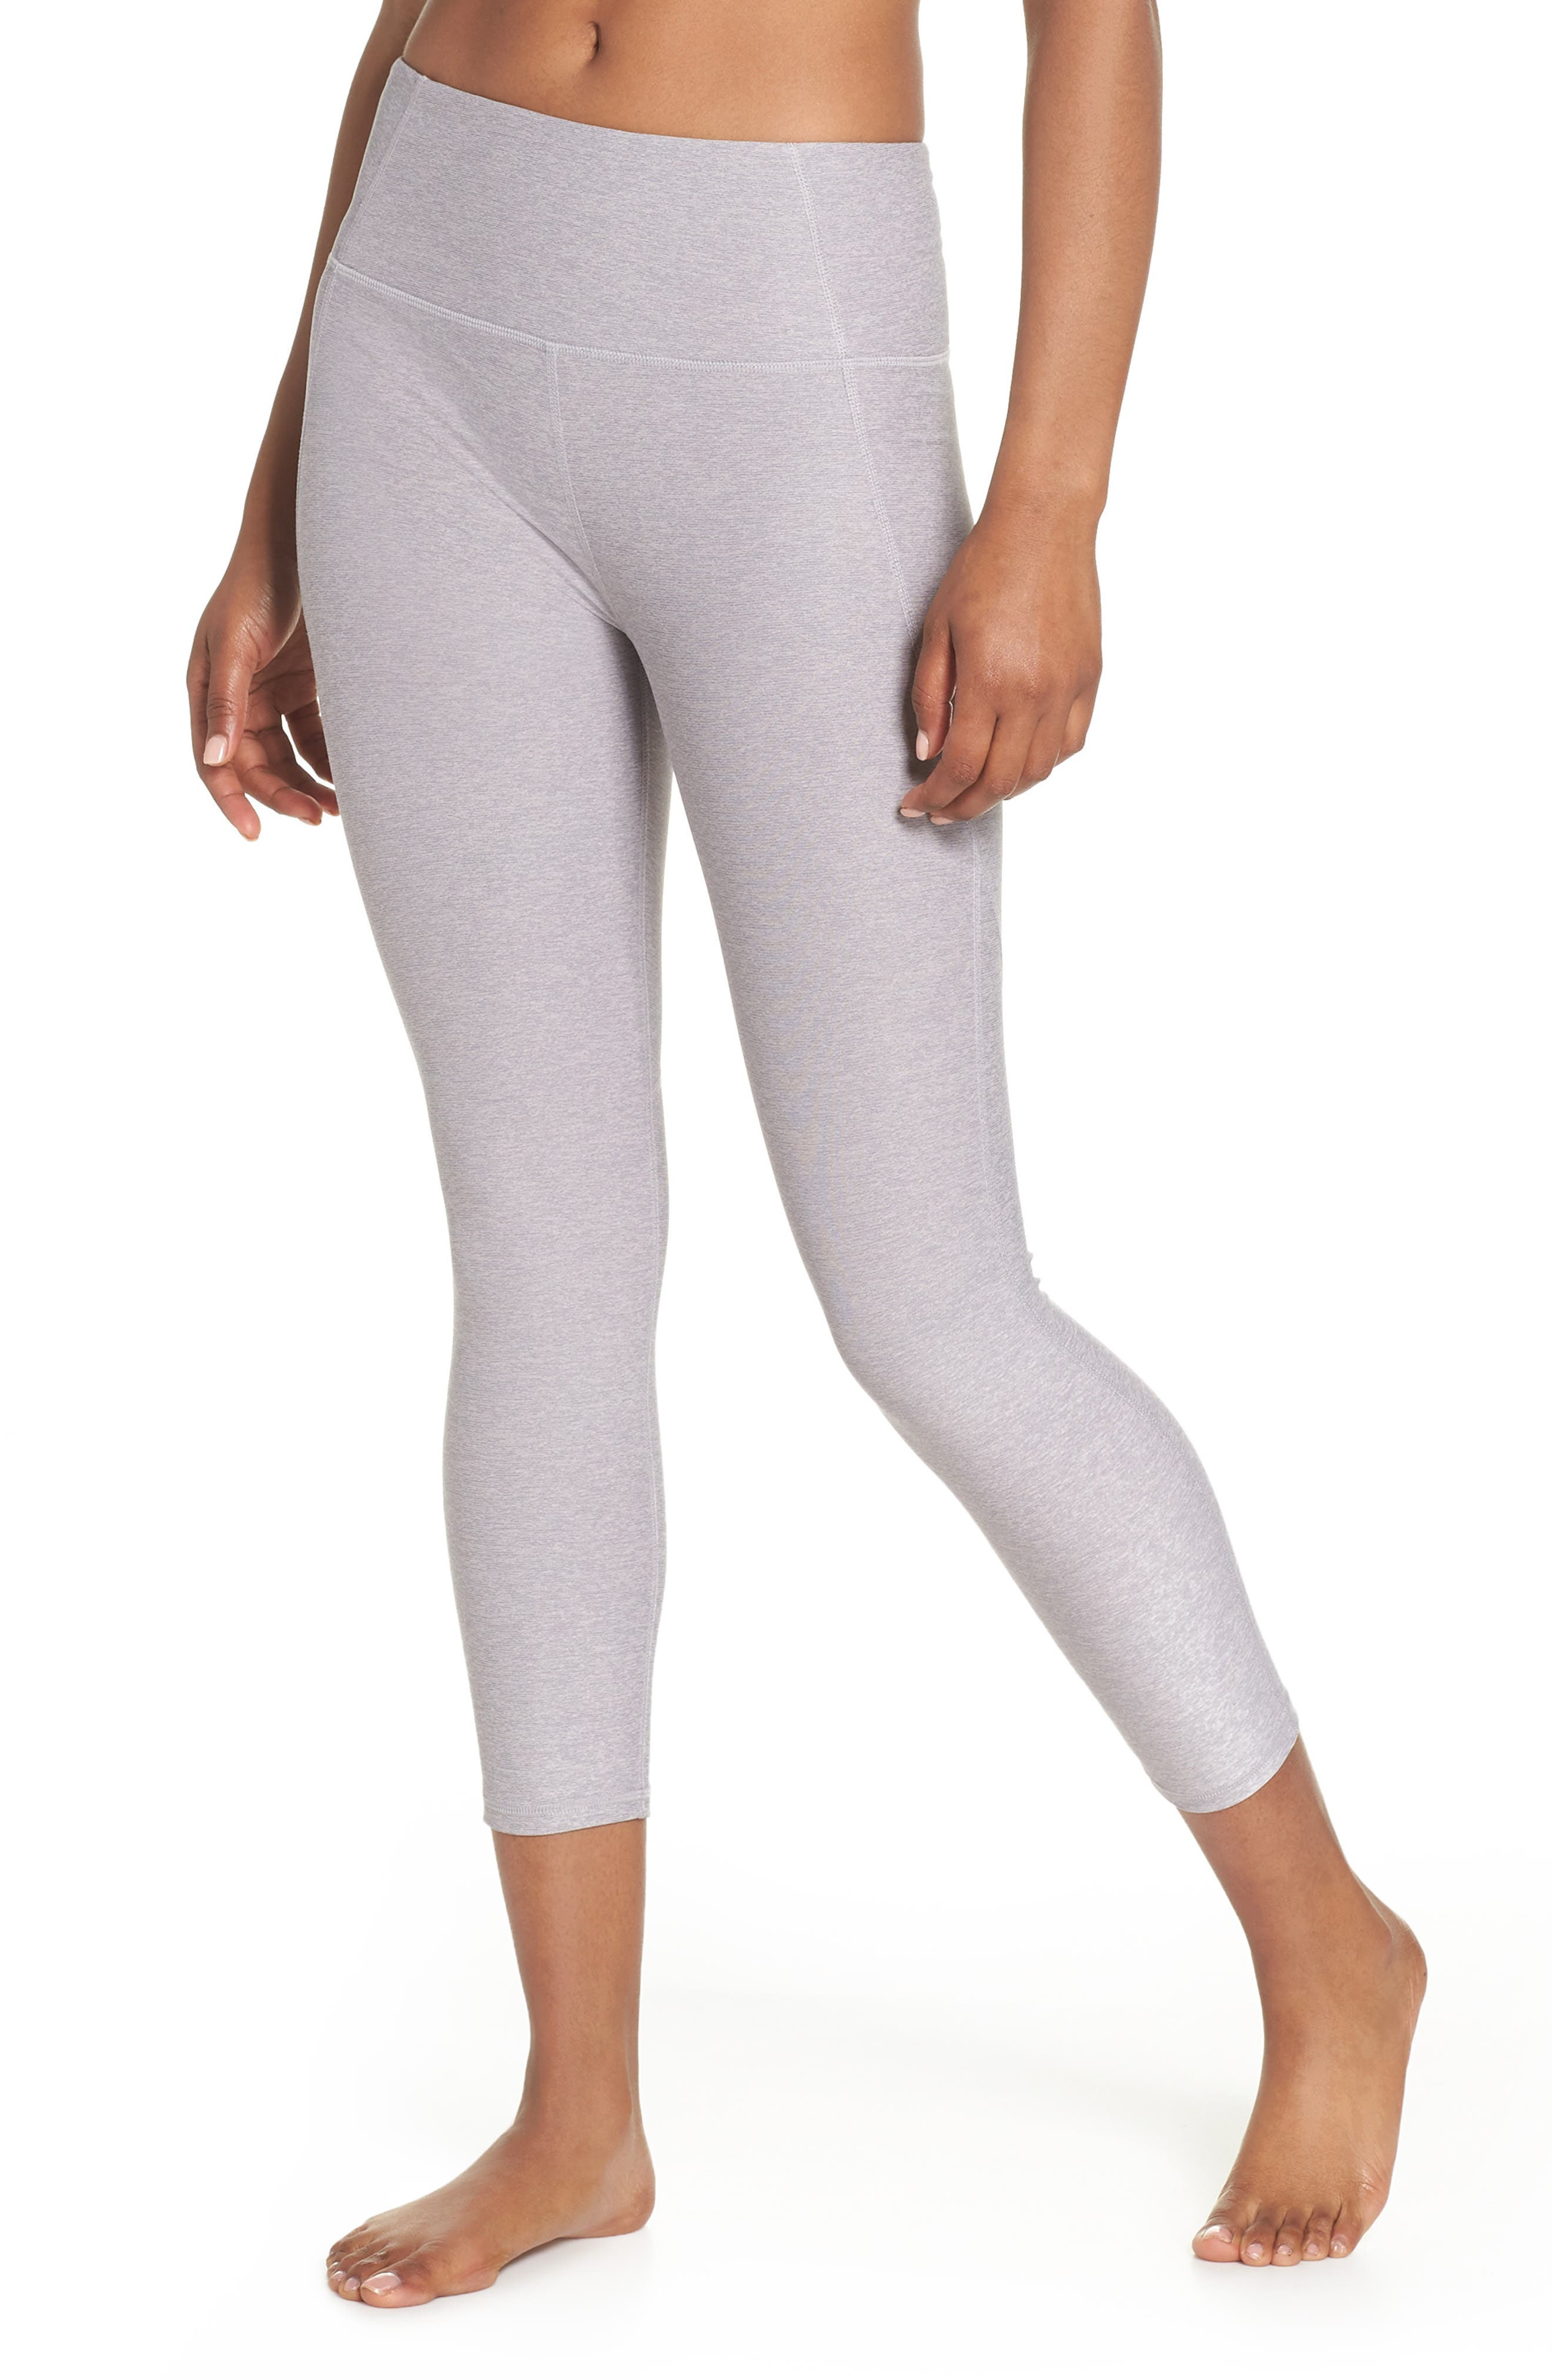 Everett High Waist Crop Tights,                         Main,                         color, GINGER SNAP/ FOLKSTONE GRAY